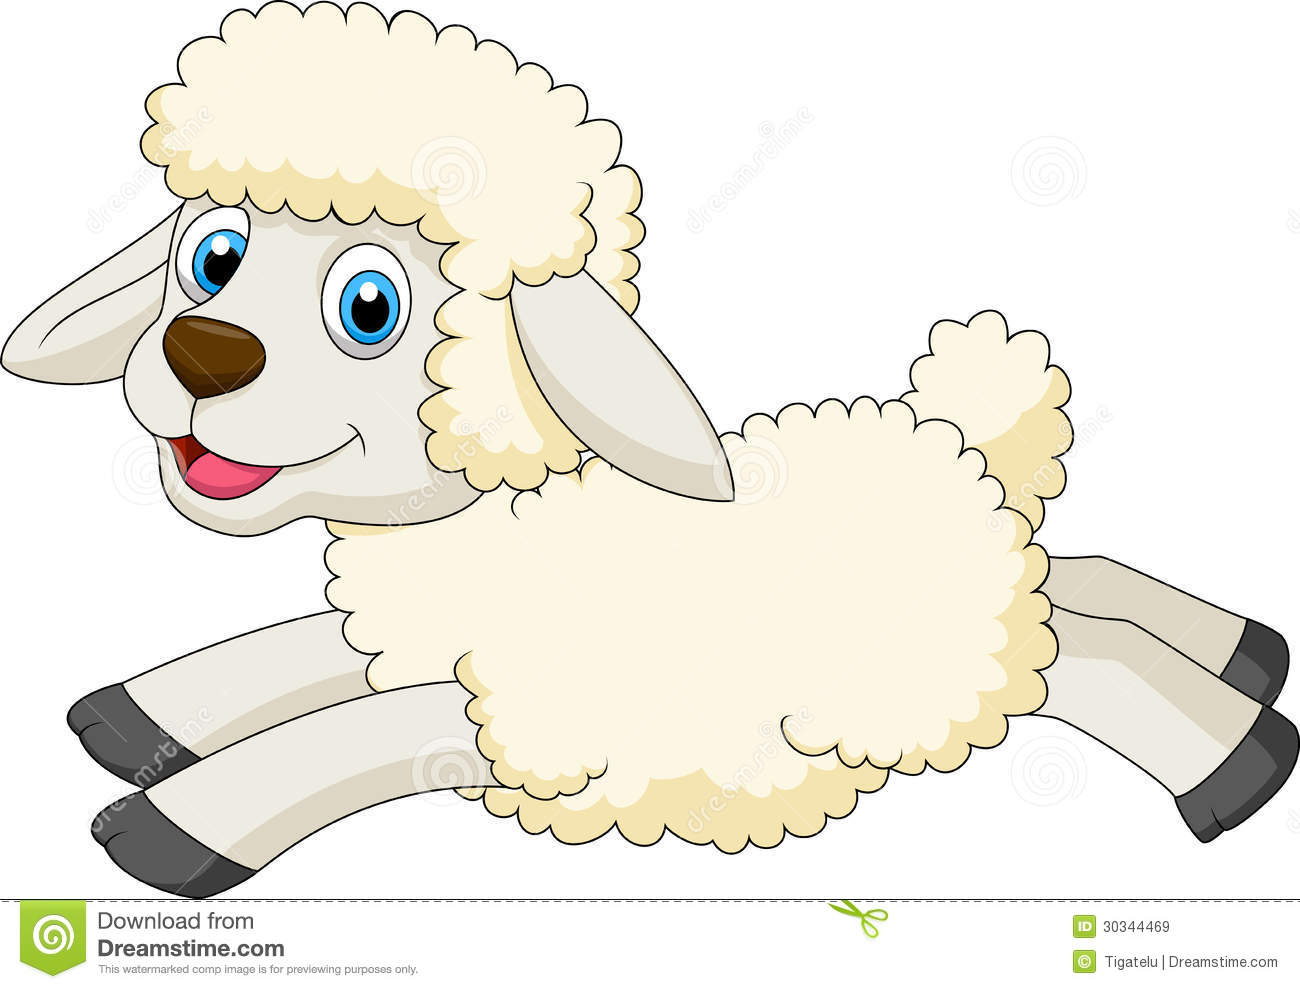 Cute Sheep Drawing Tumblr Cute Sheep Cartoon Jumping Stock Vector Illustration Of